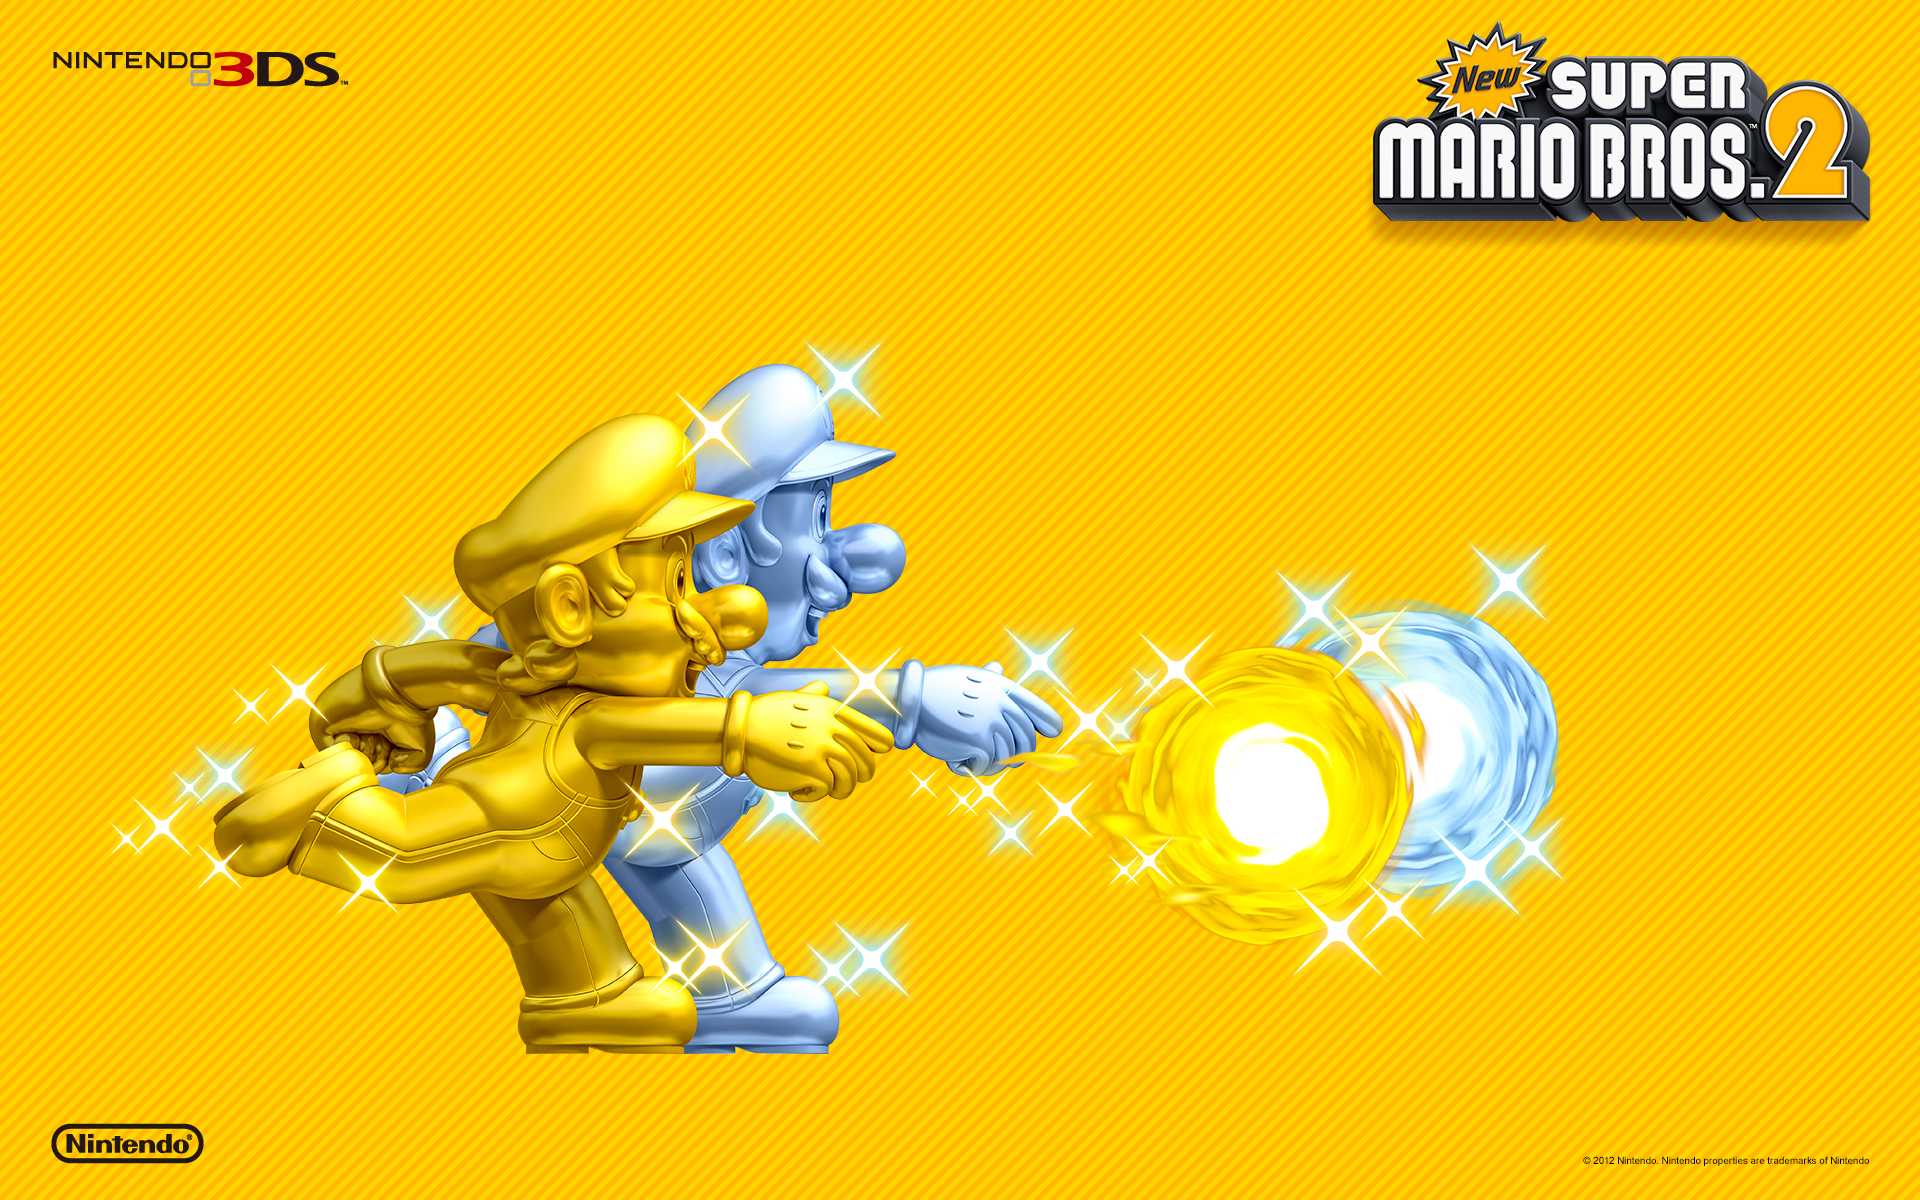 New Super Mario Bros 2 Gold Mario & Silver Luigi Wallpaper